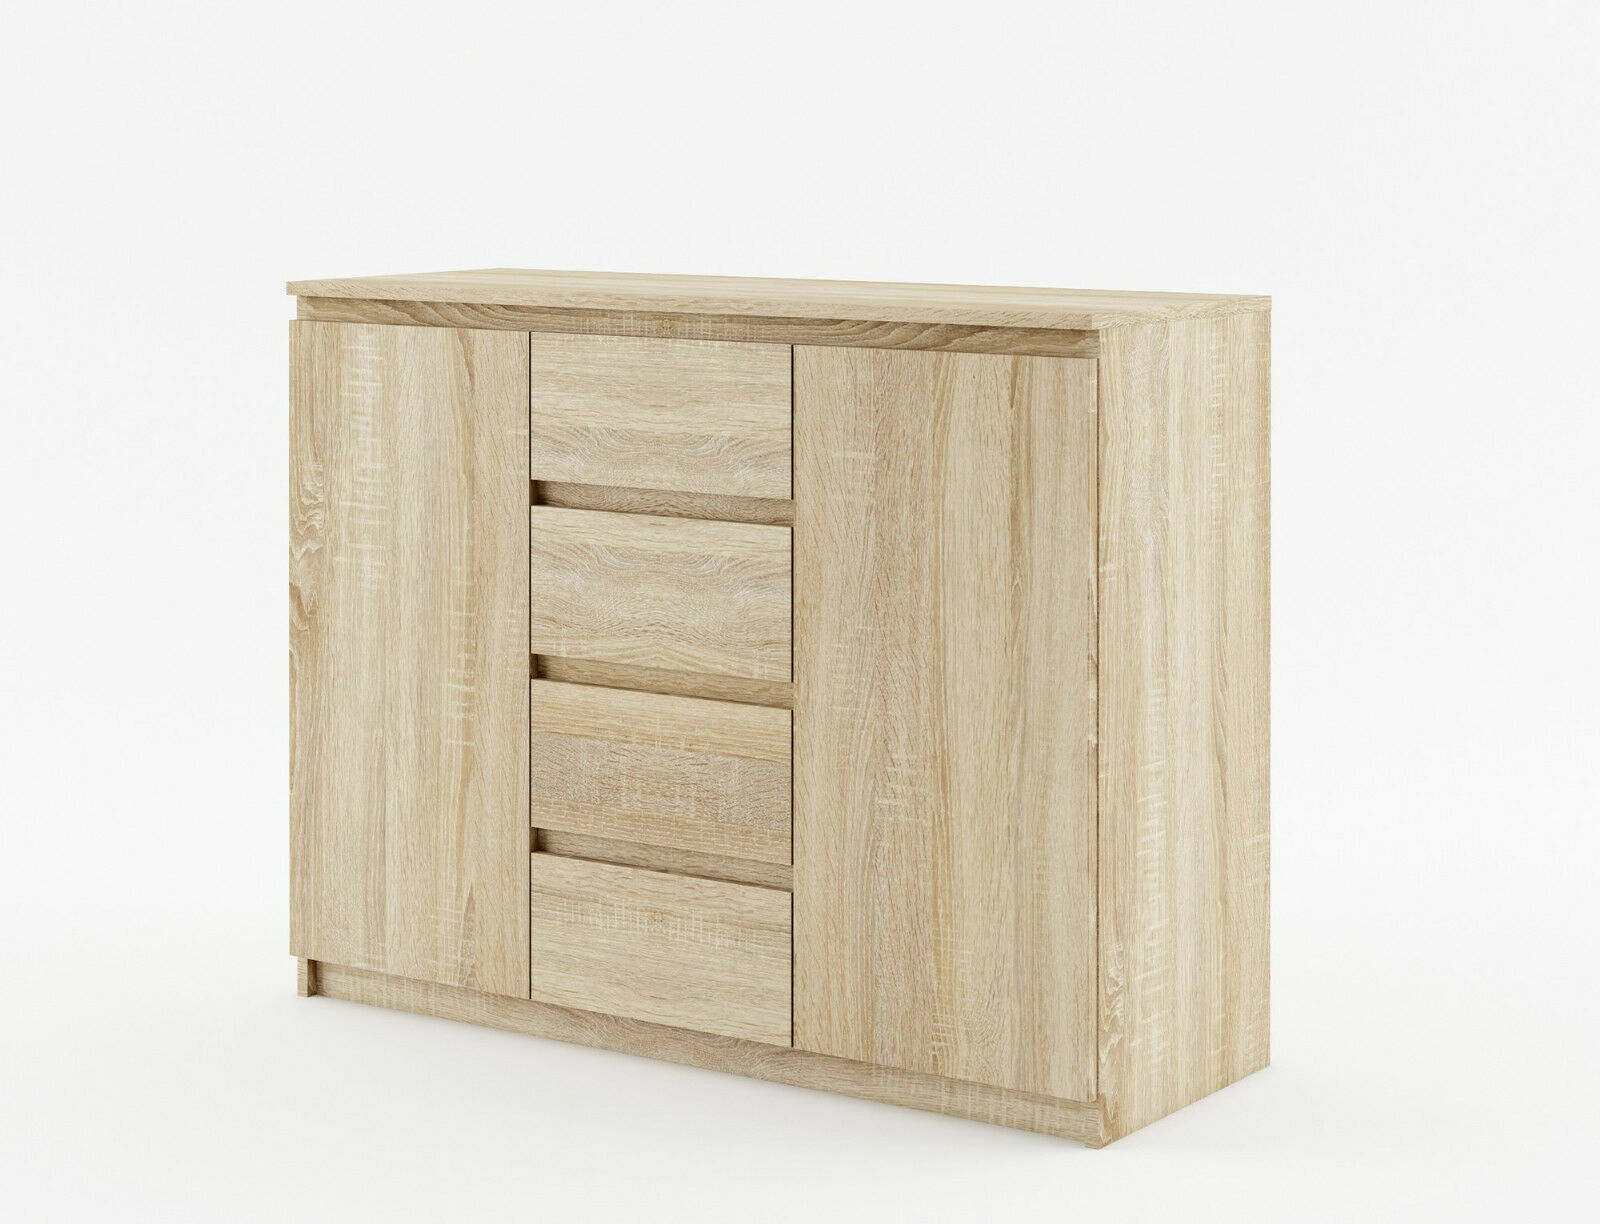 Schlafzimmer Kommode Highboard Kommode Idea Sideboard Highboard Mit 4 Schubladen 2 Türen